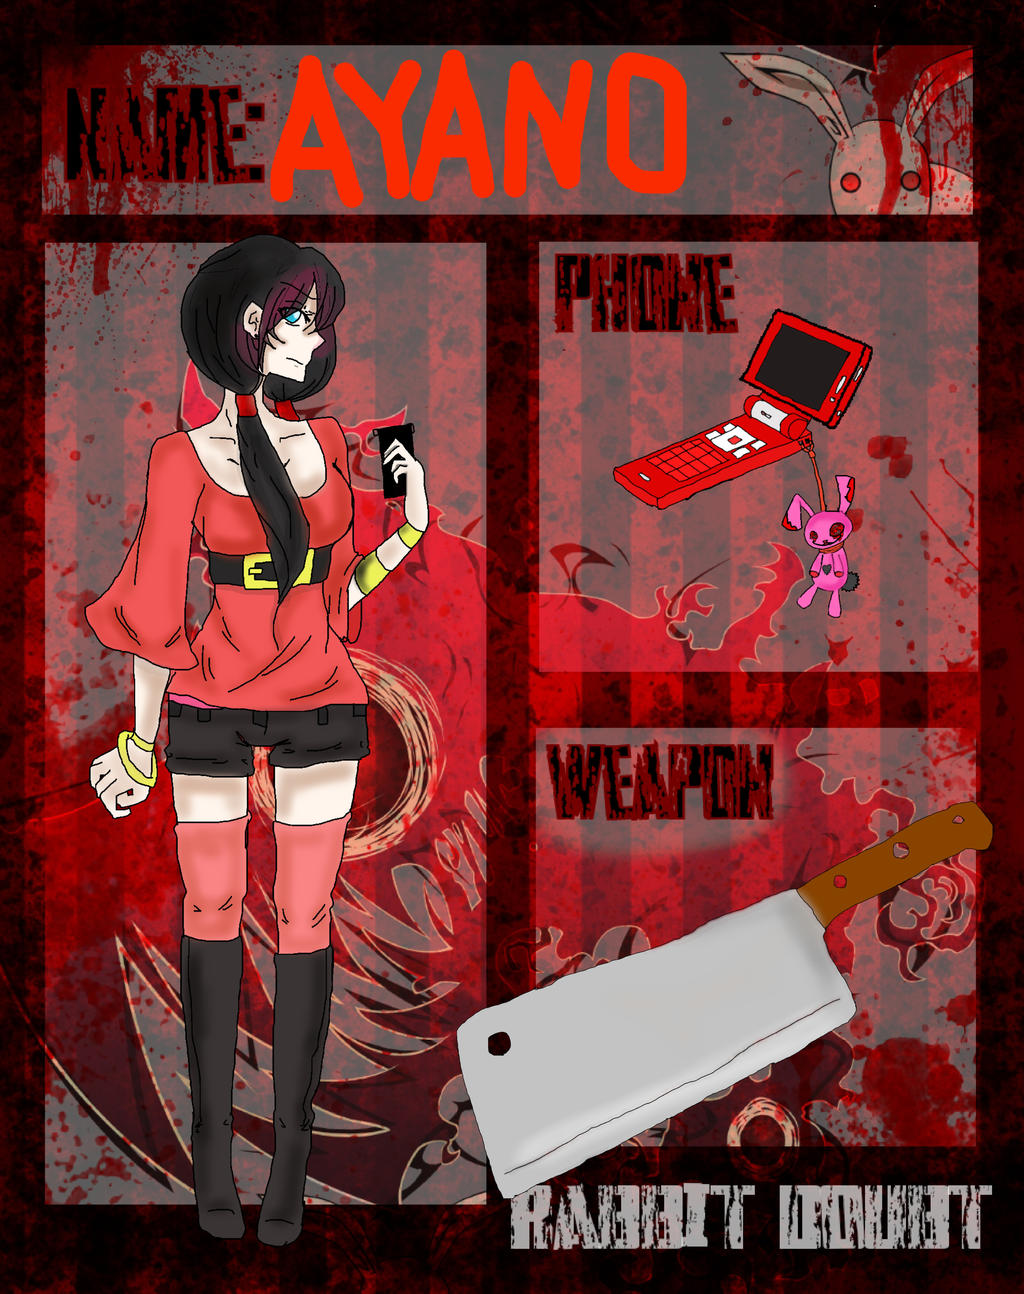 Rabbito-Dauto APP: Ayano by Just-Anothr-Fan